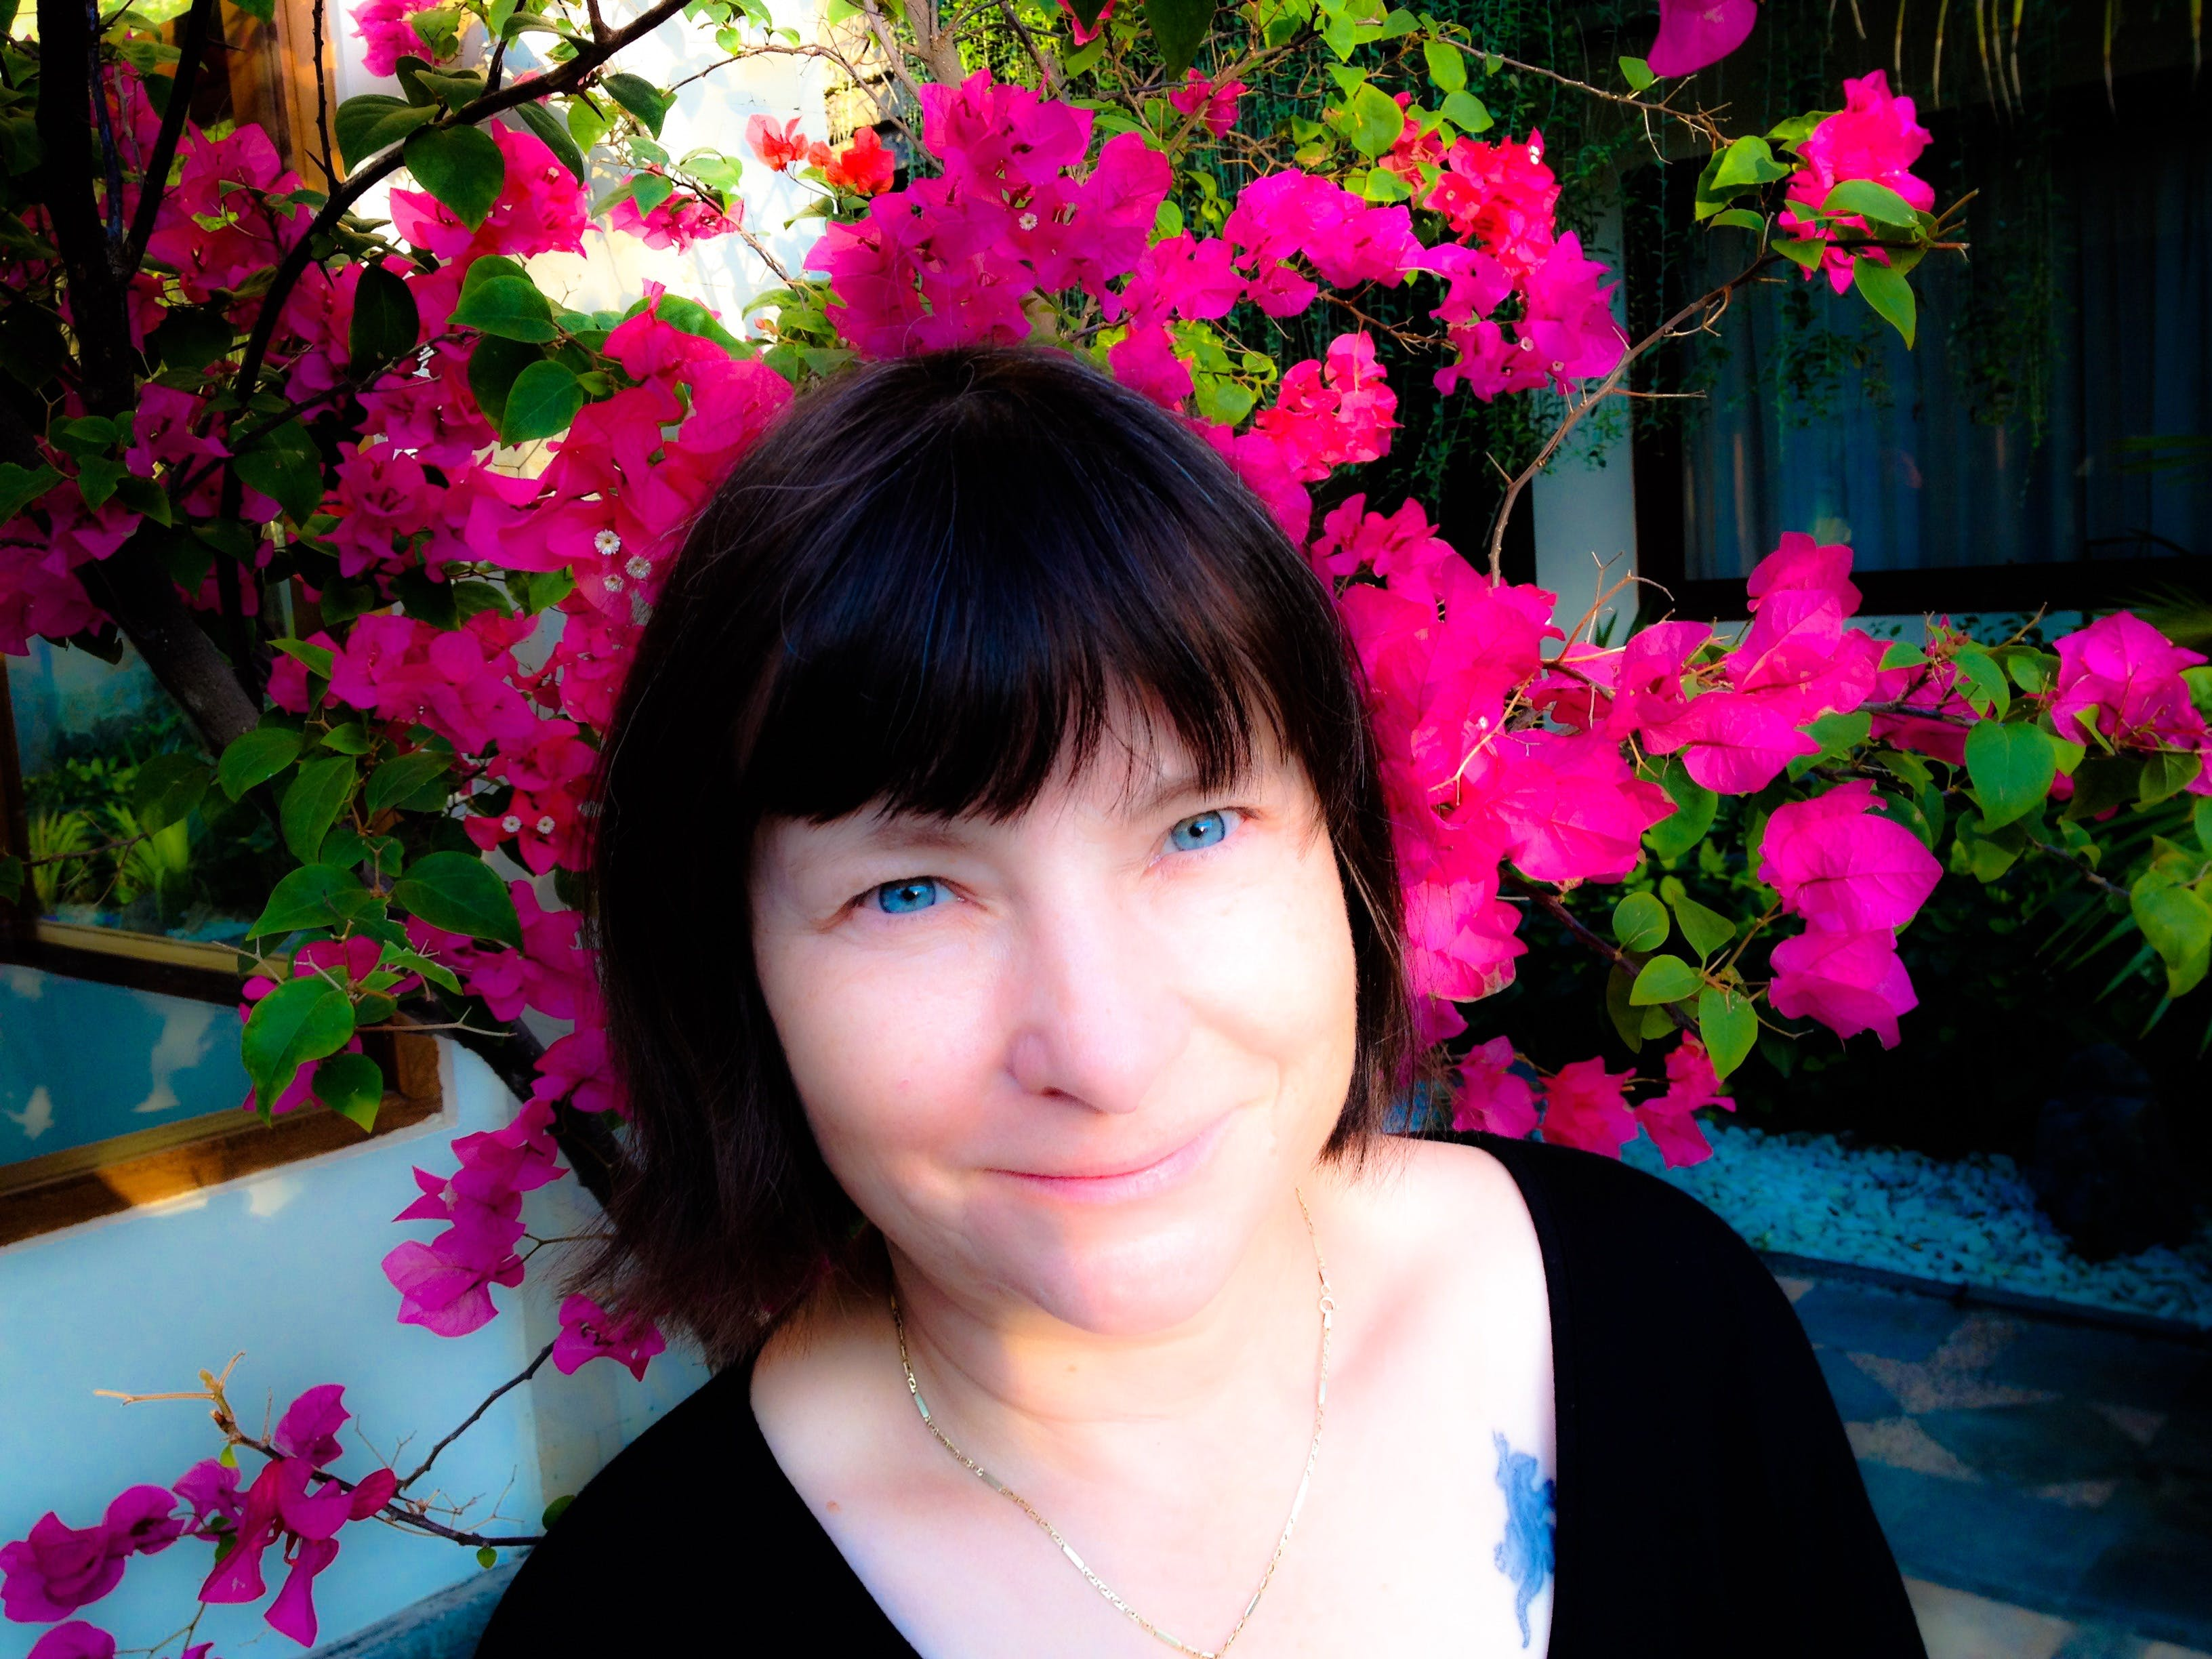 Meet Psychic Jarka from Jarka's Psychic Readings. A top-rated & accurate psychic who intuitively answers all your questions